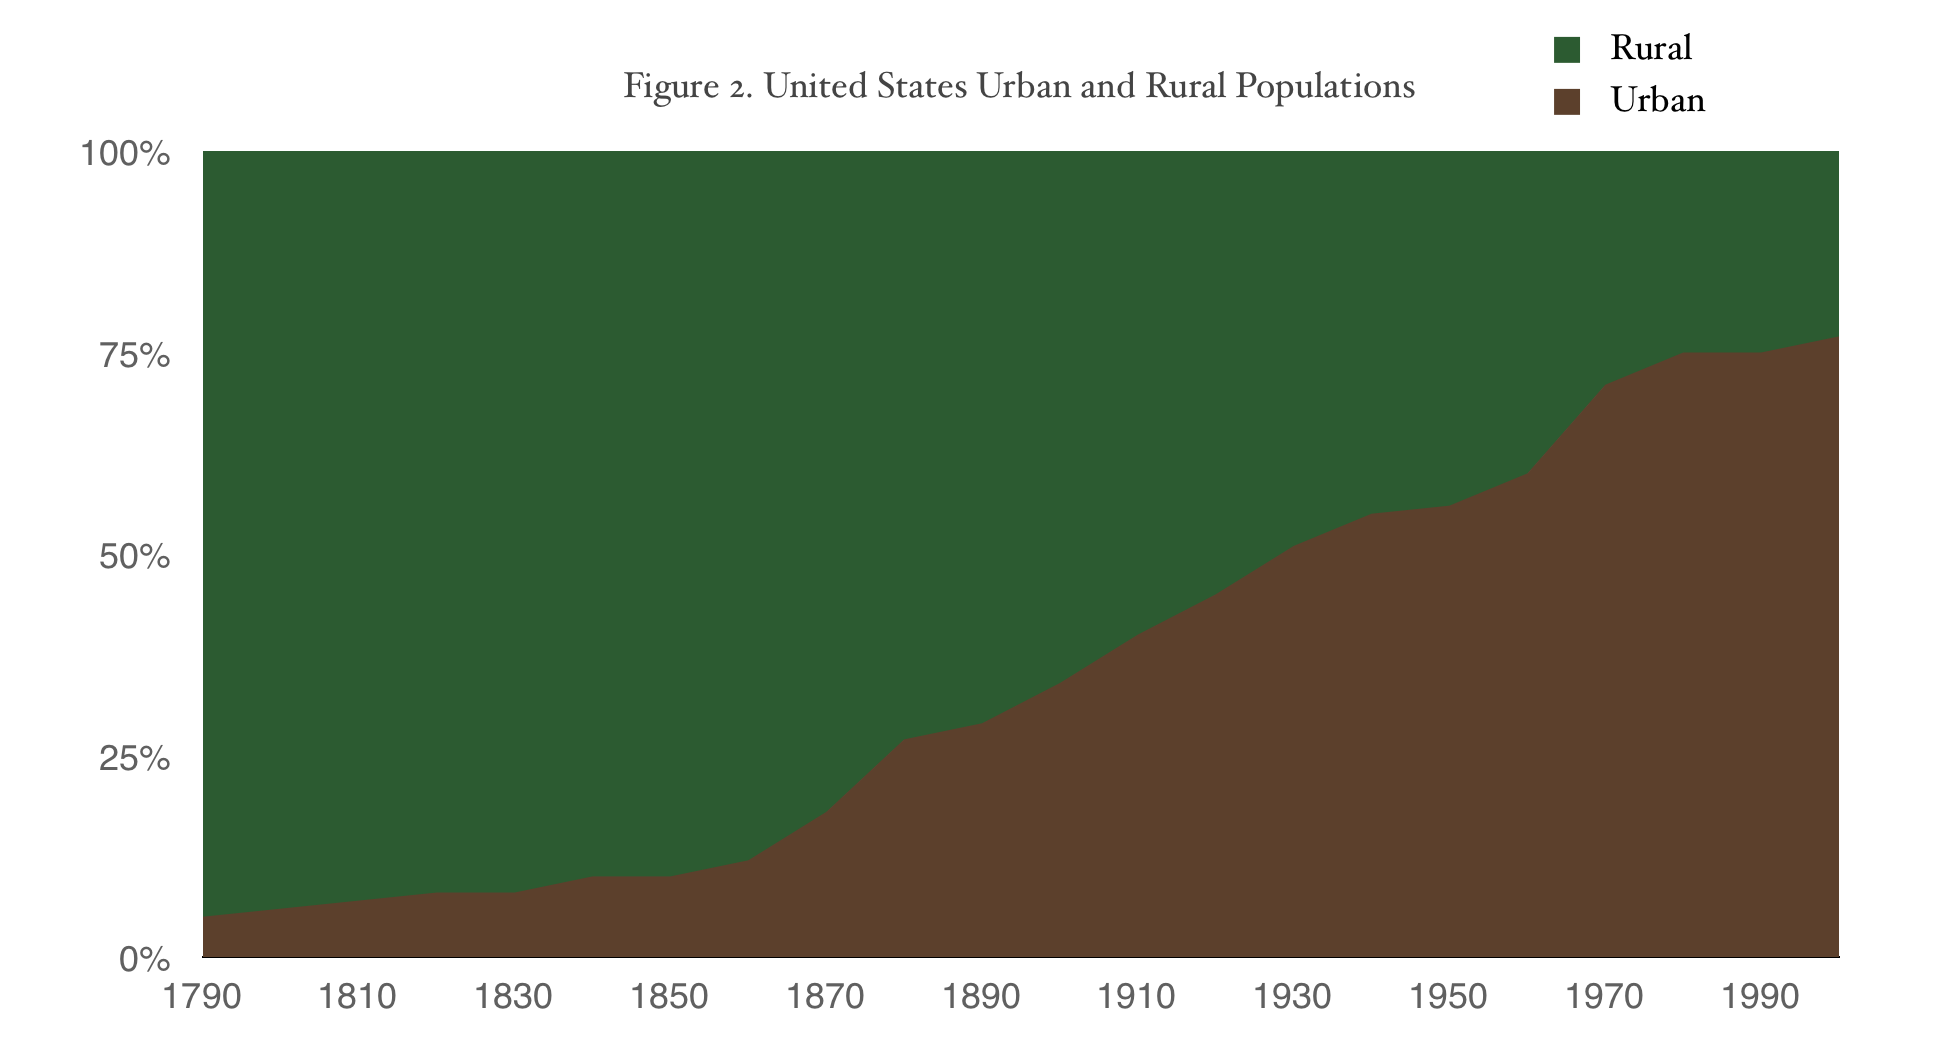 graph of urban versus rural population with urban population growing